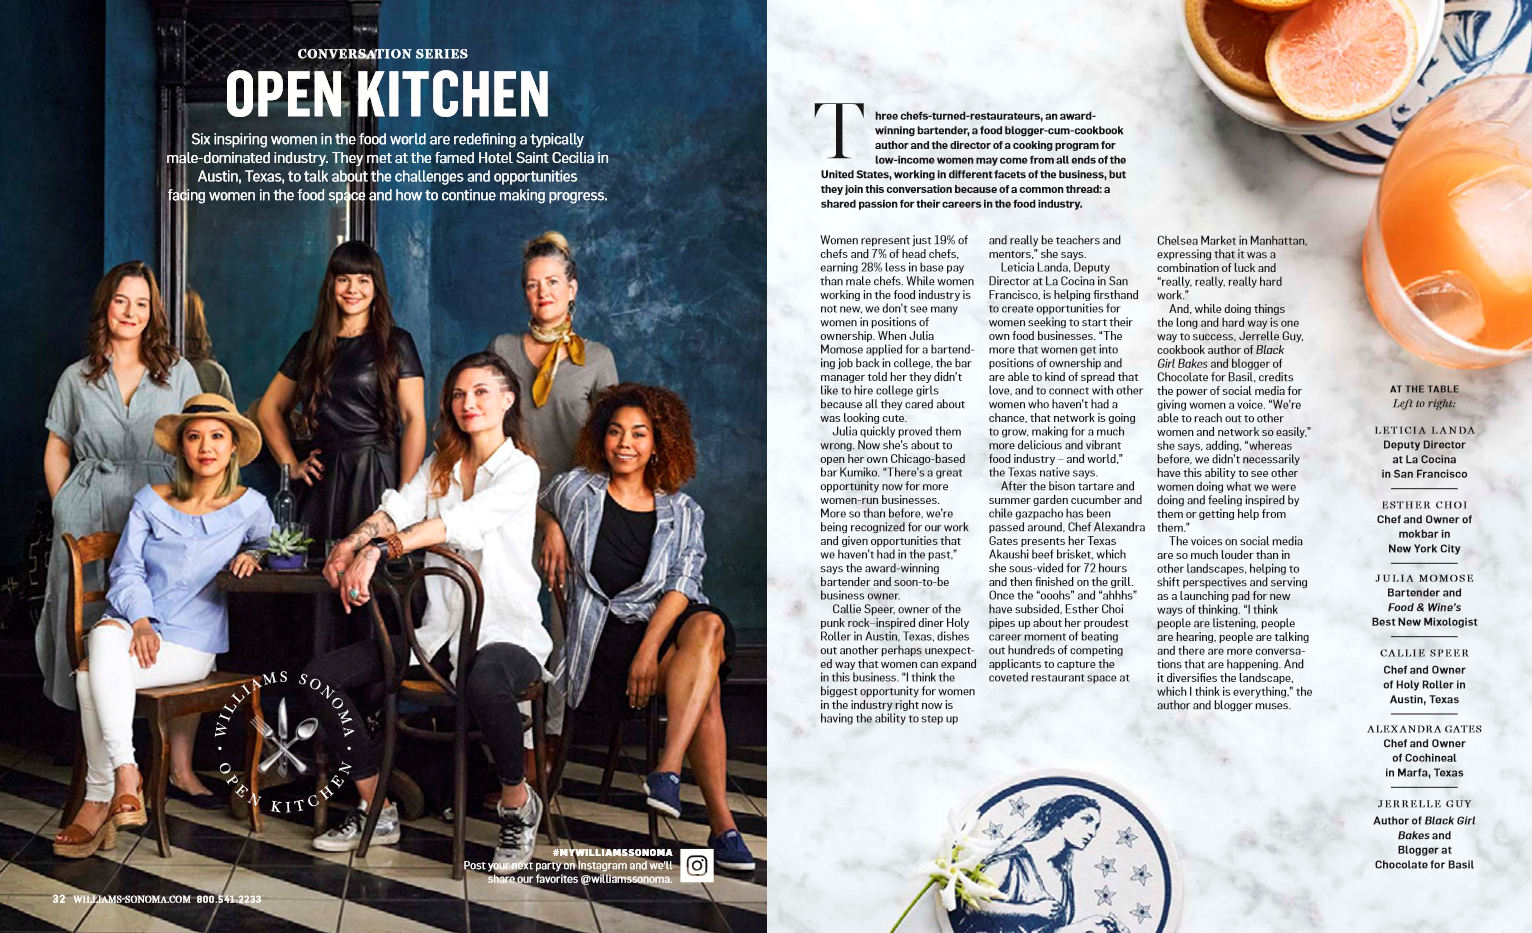 Williams Sonoma - Chef/Owner Alex Gates was invited as one of six inspiring women in the food world from around the country to take part in the Williams Sonoma's Summer 2018 Open Kitchen Conversation Series.Click here to read the full article.